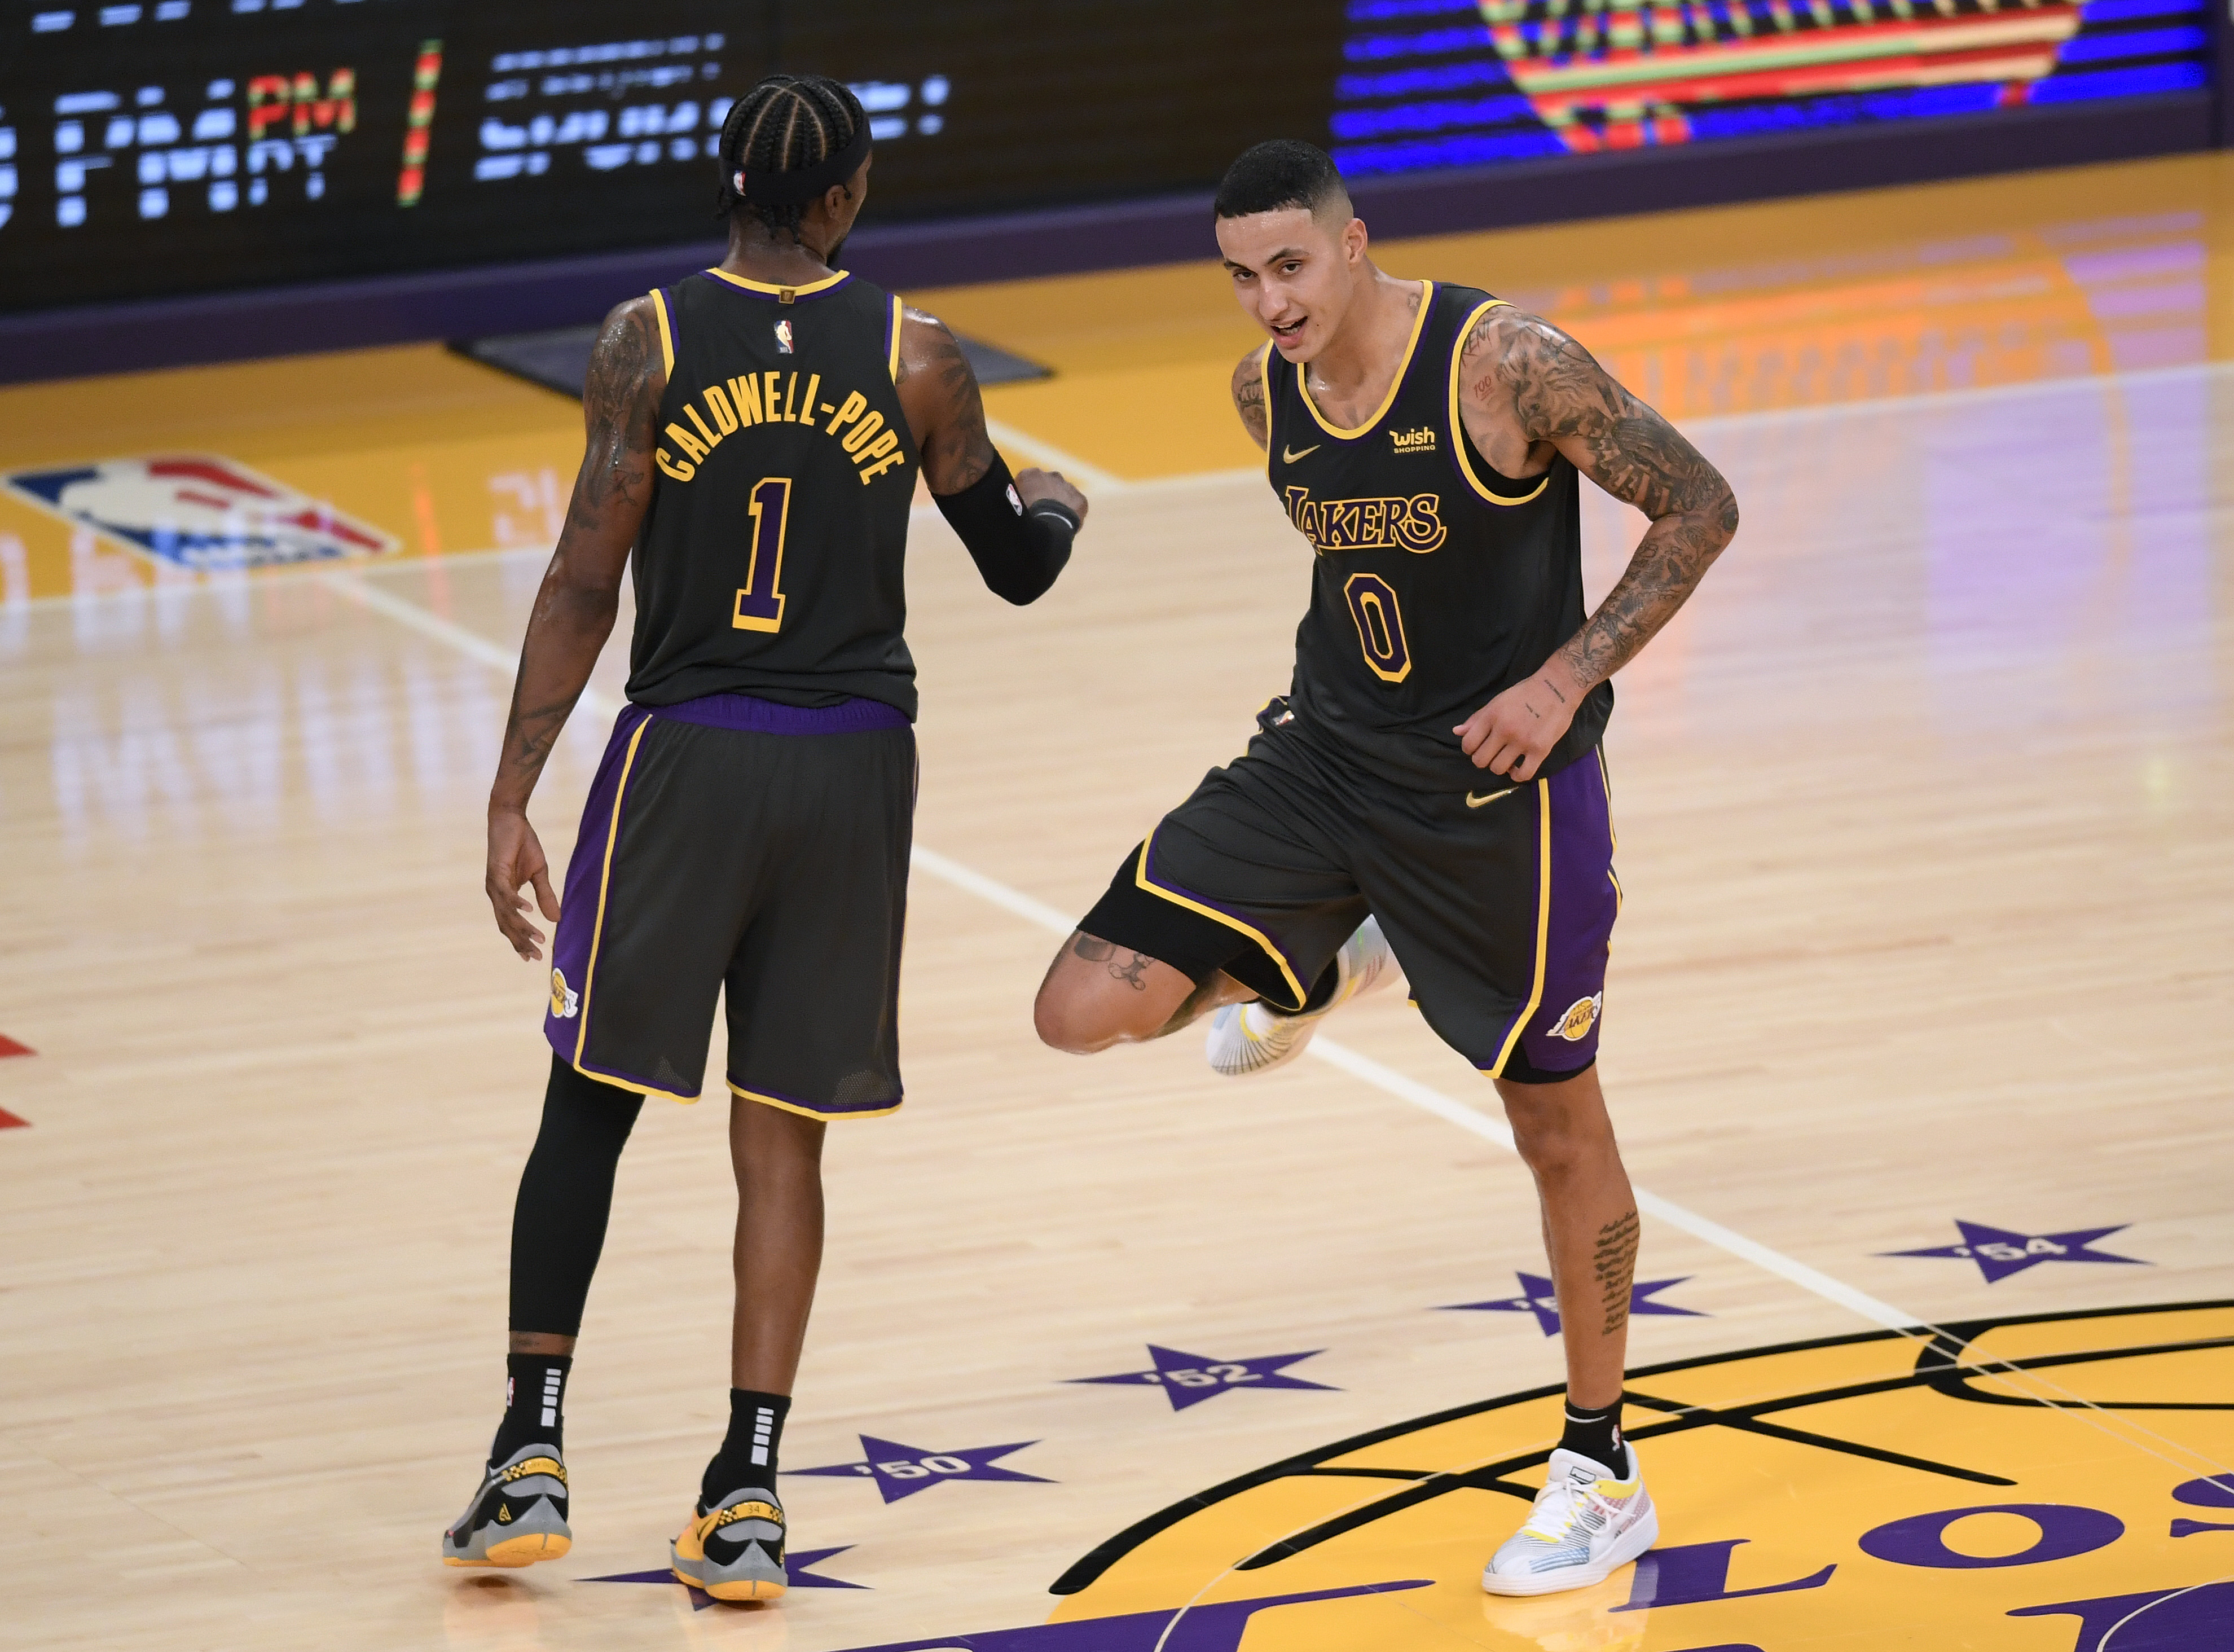 The NBA's 'Earned Edition' Jerseys Separate the Winners From the Losers With a Special Touch for the Lakers